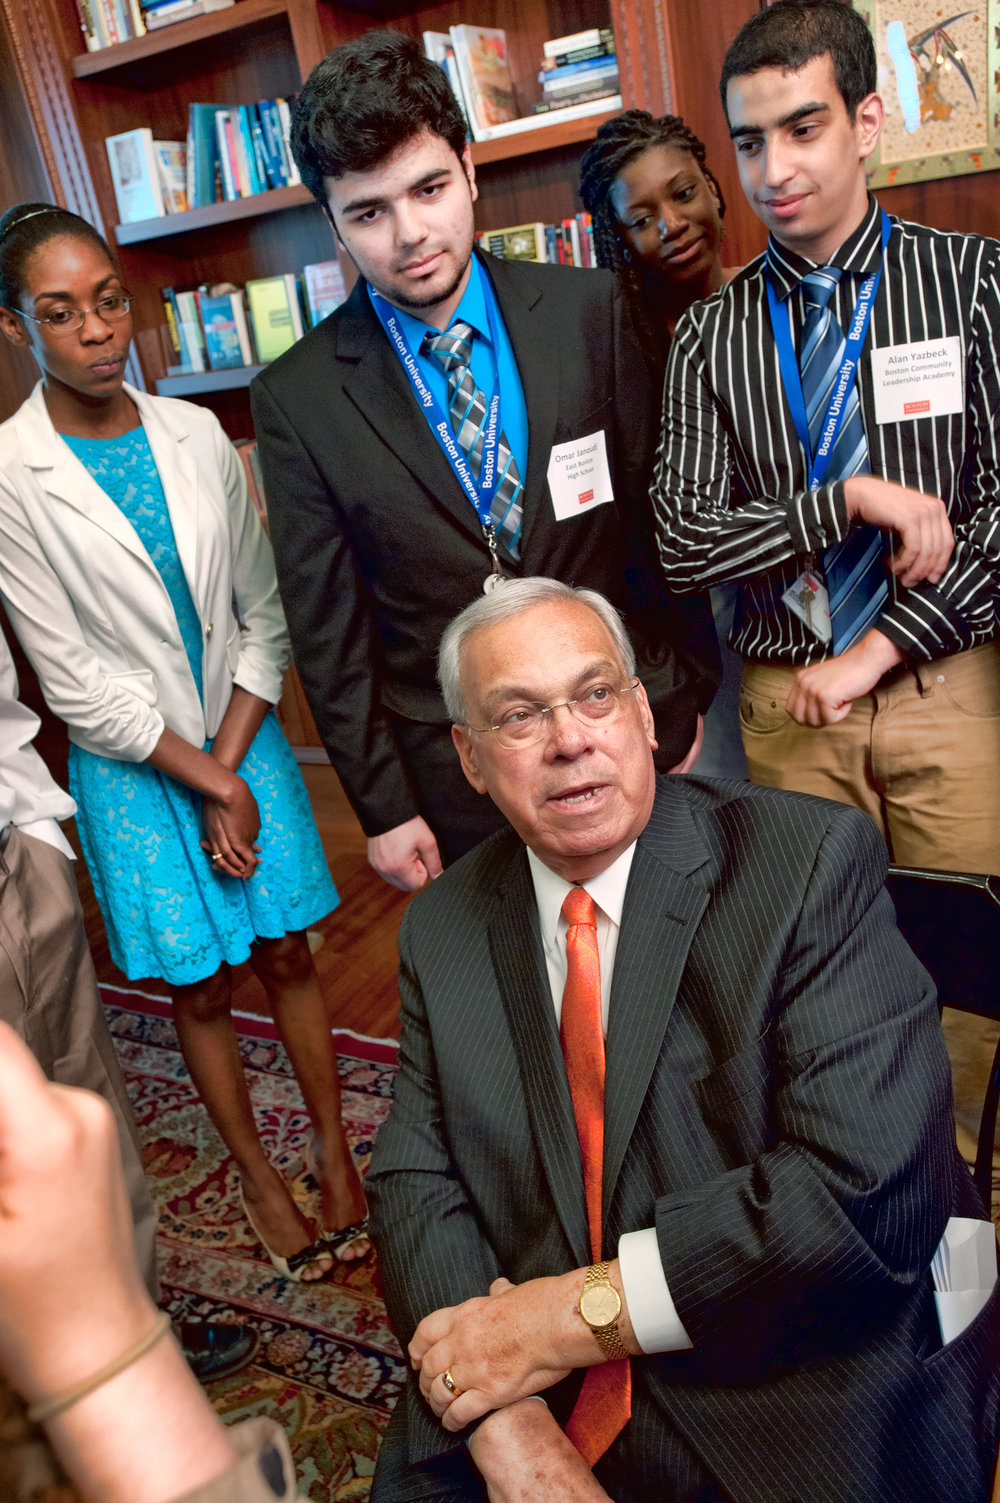 Mayor Thomas Menino